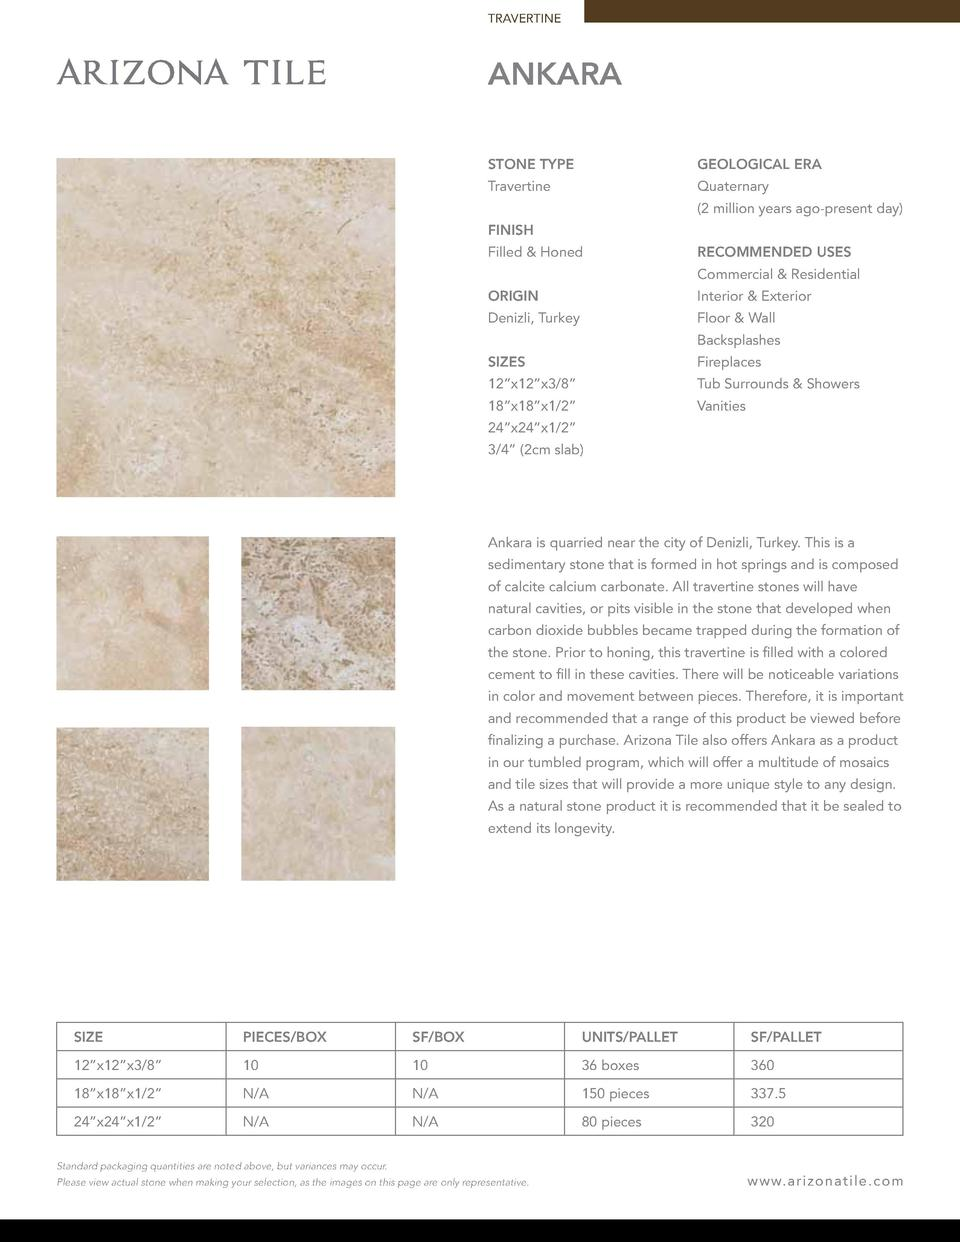 TRAVERTINE  ANKARA STONE TYPE  GEOLOGICAL ERA  Travertine  Quaternary  2 million years ago-present day   FINISH Filled   H...